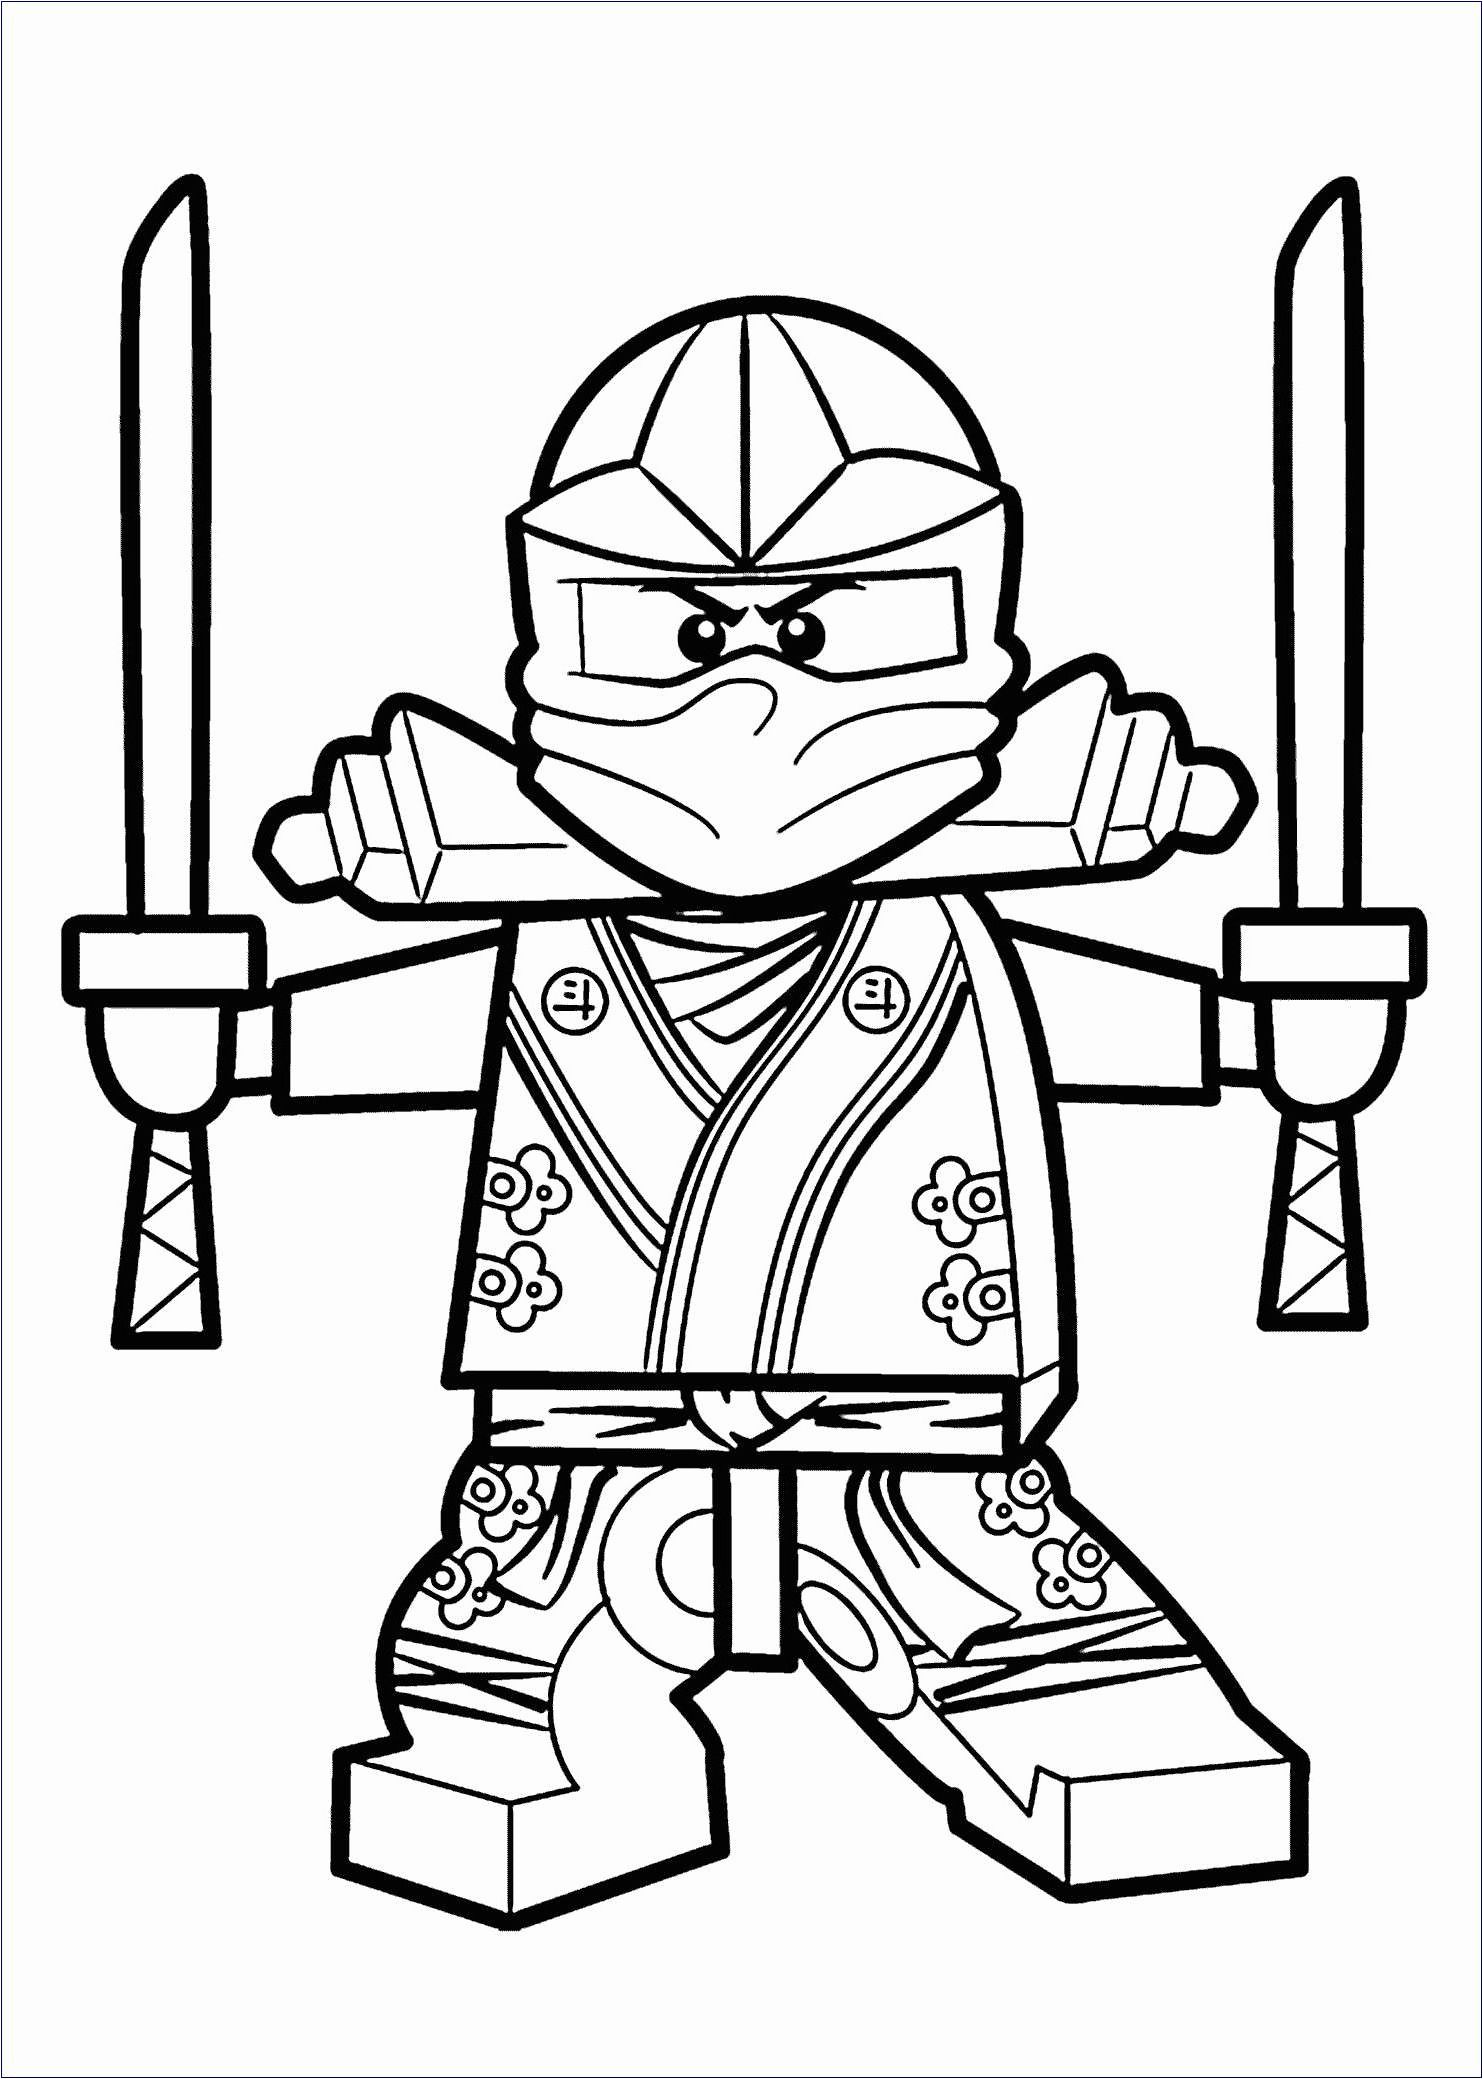 Lego Coloring Activities In 2020 Lego Coloring Pages Ninjago